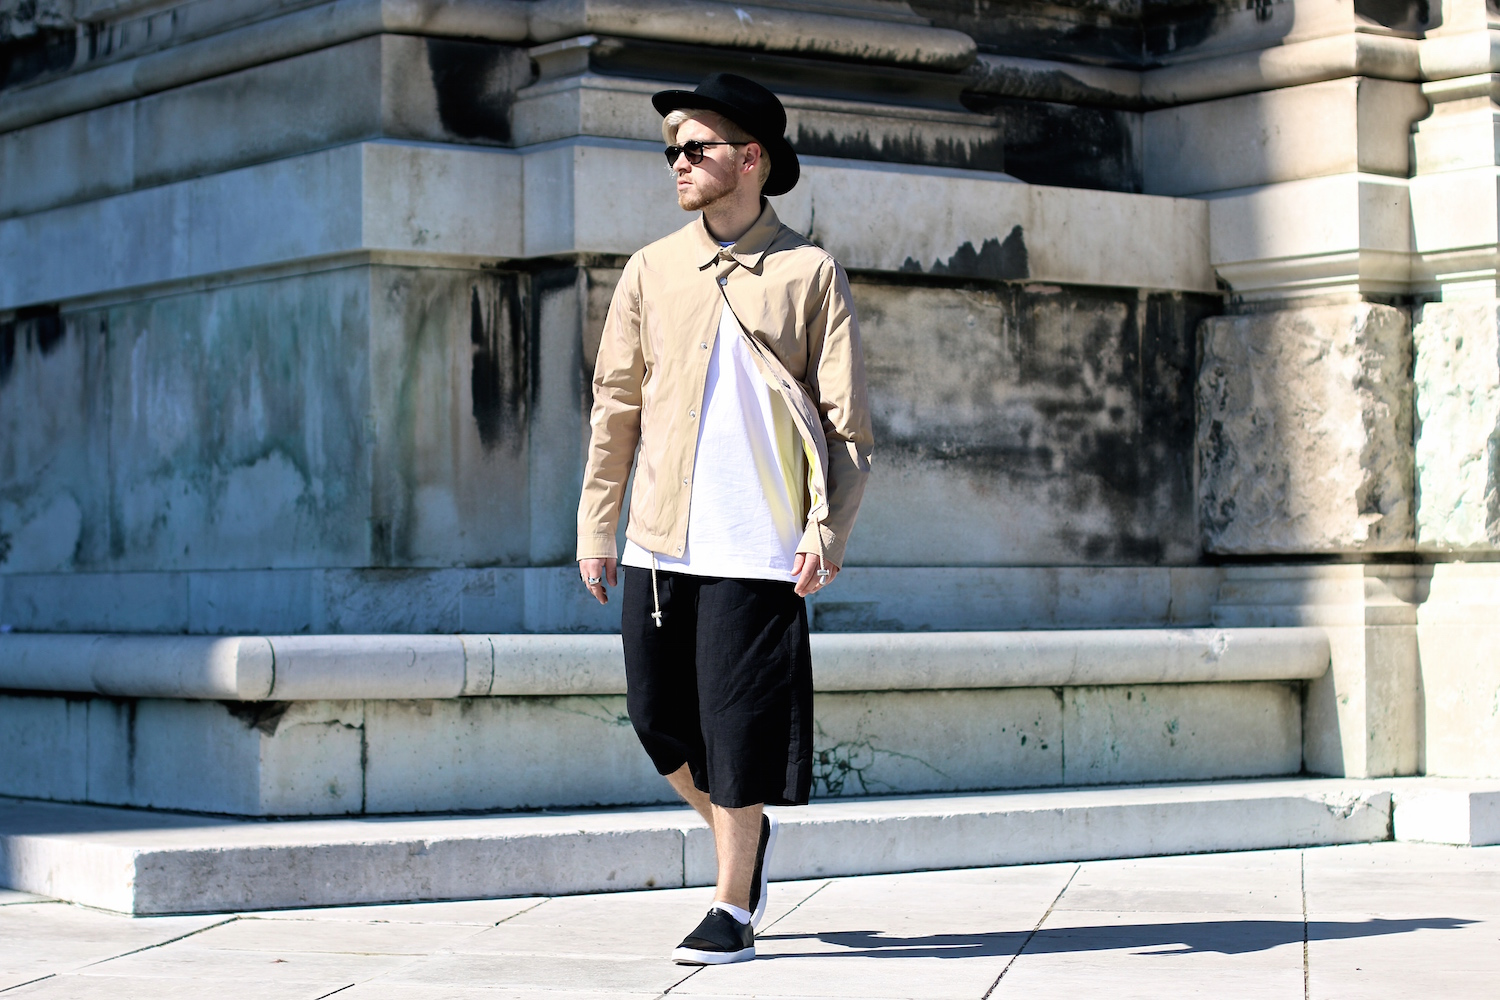 Asos #AsSeenOnMe: Urban Baggy Streetstyle wearing Culotte Shorts, Coach Jacket and Slip-Ons